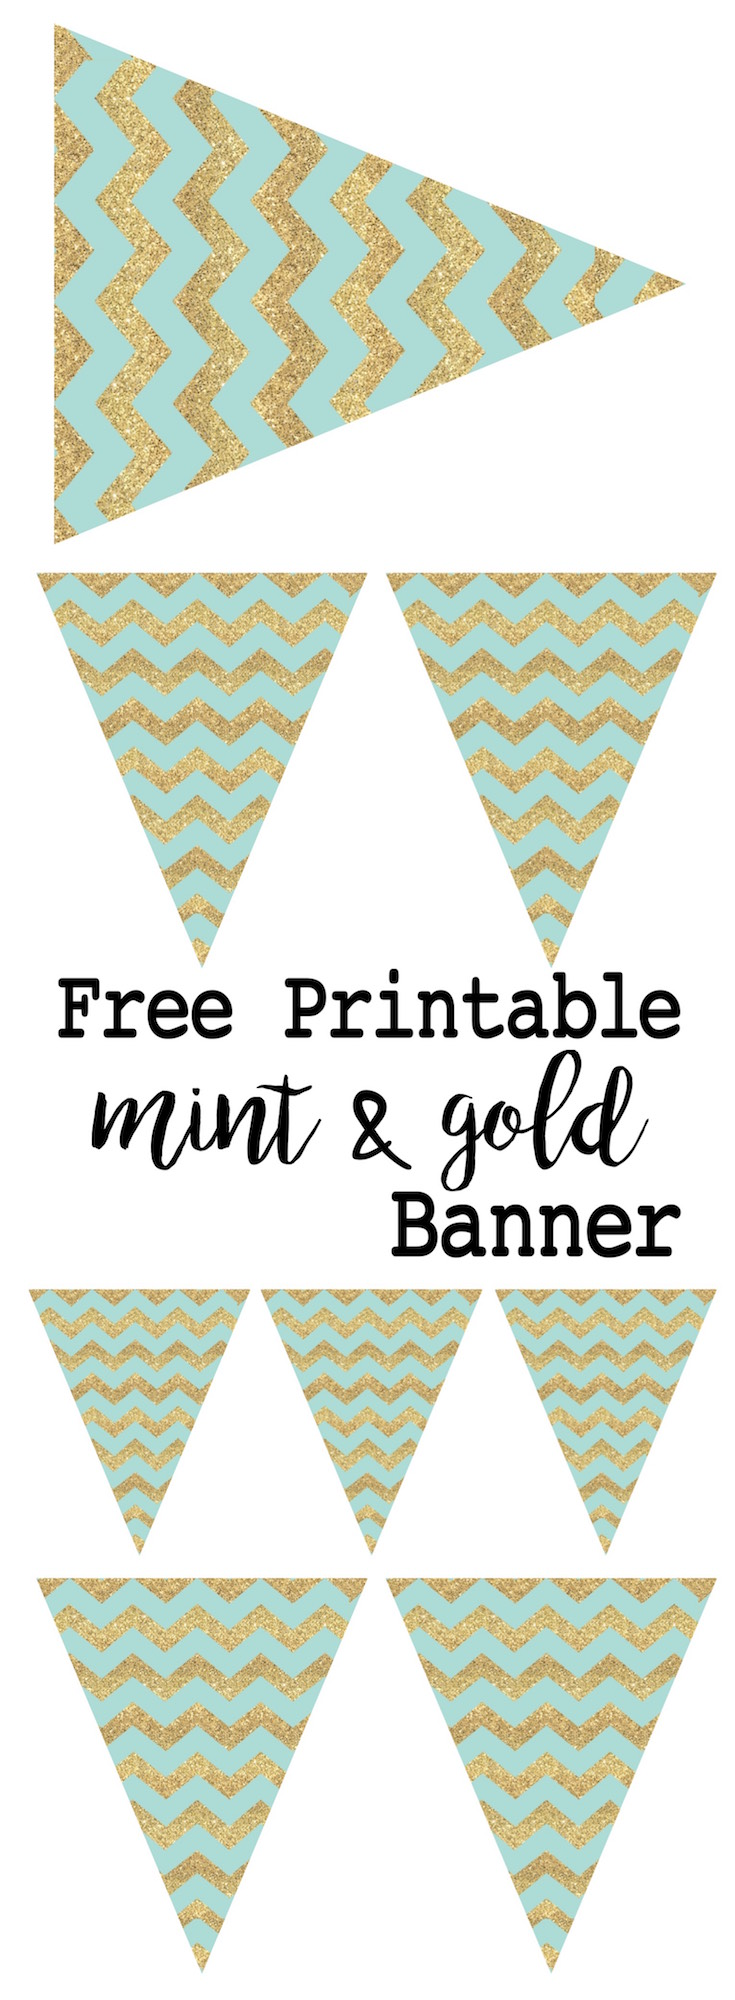 mint and gold banner free printable   paper trail design